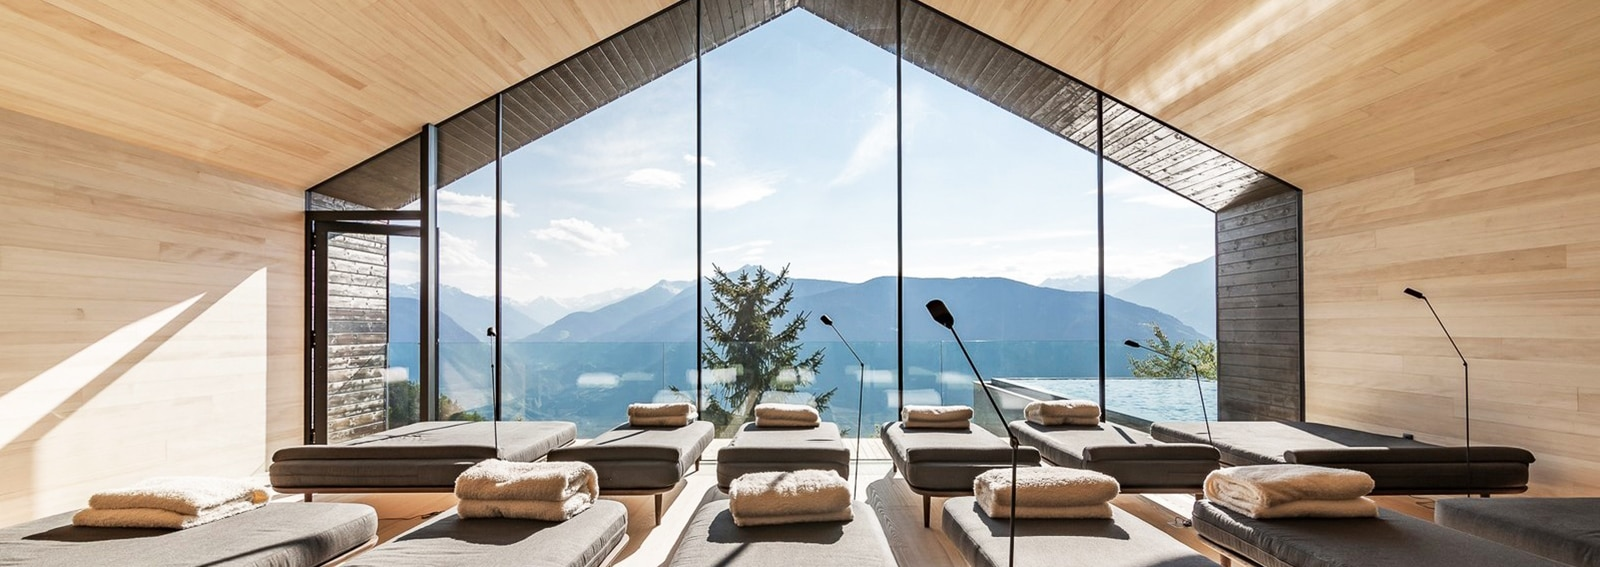 Hotel di design in montagna i migliori per l inverno for Design hotels 2015